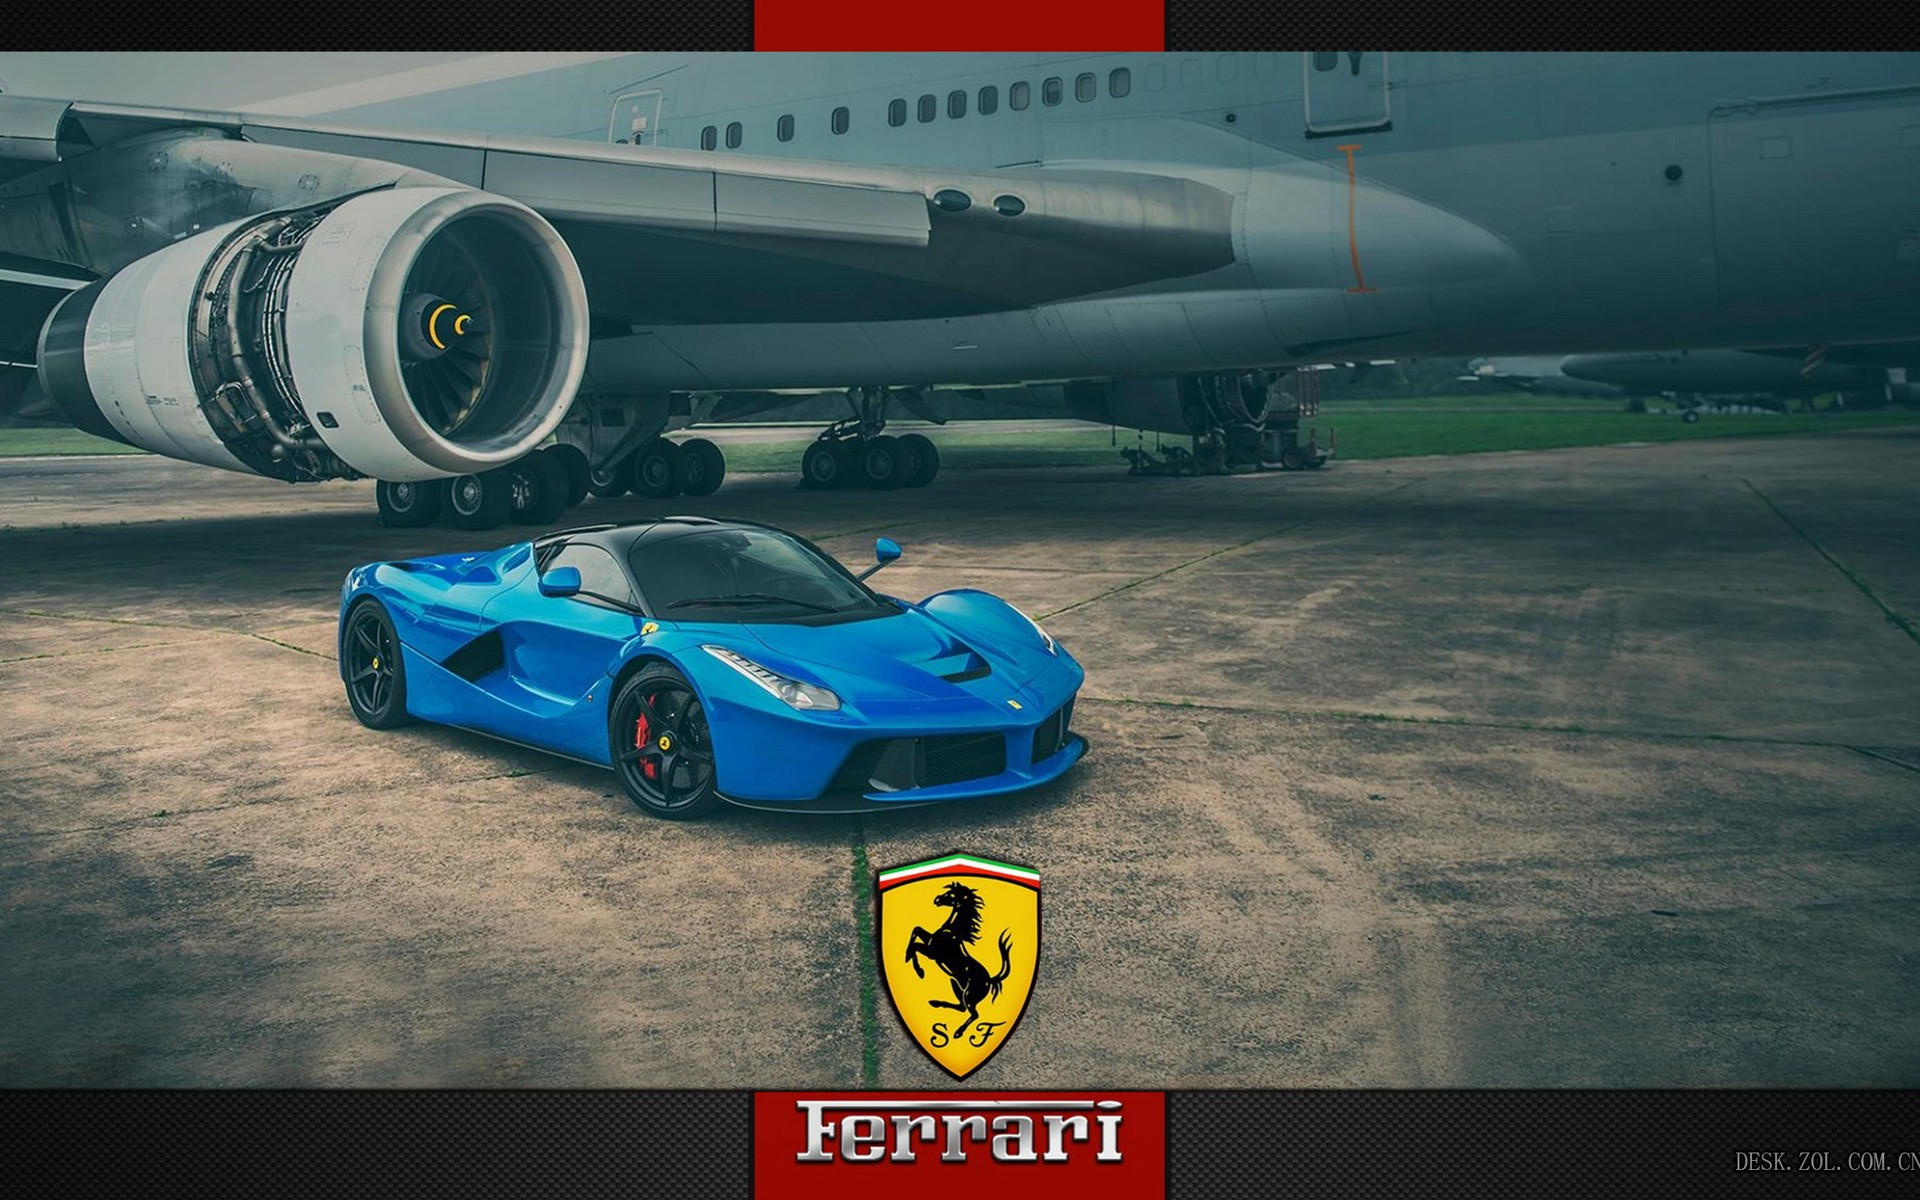 Blue Ferrari Iphone 253622 Hd Wallpaper Backgrounds Download